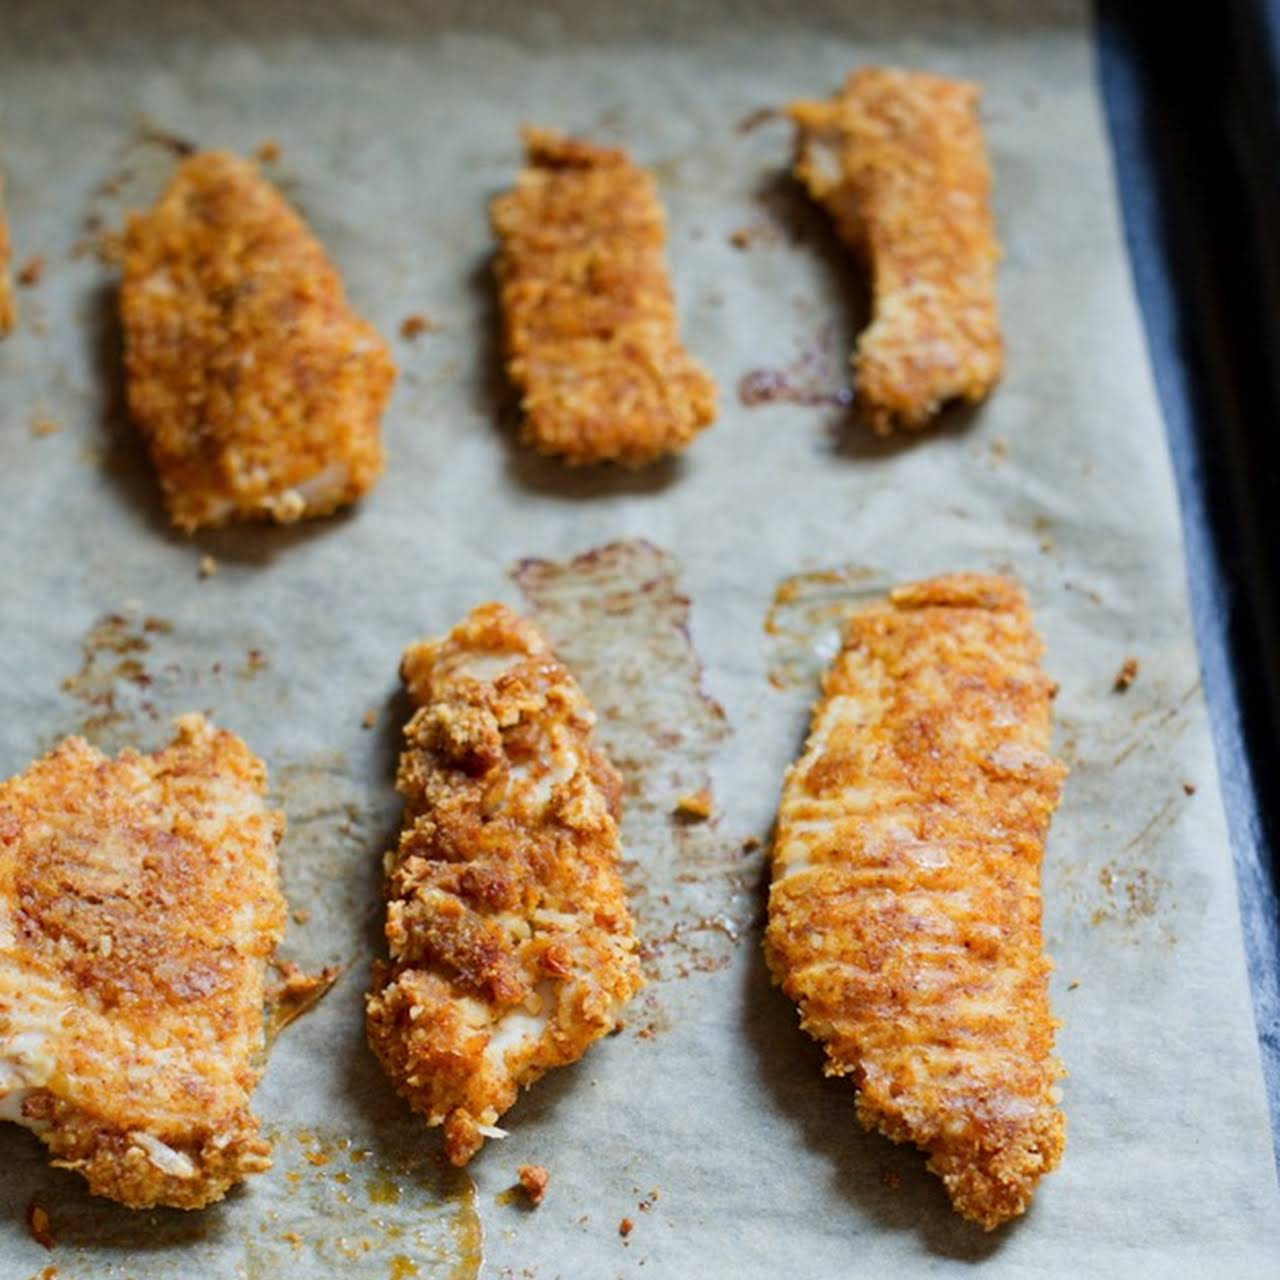 Baked Paleo Chicken Tenders (Hu Kitchen Copycat Recipe)